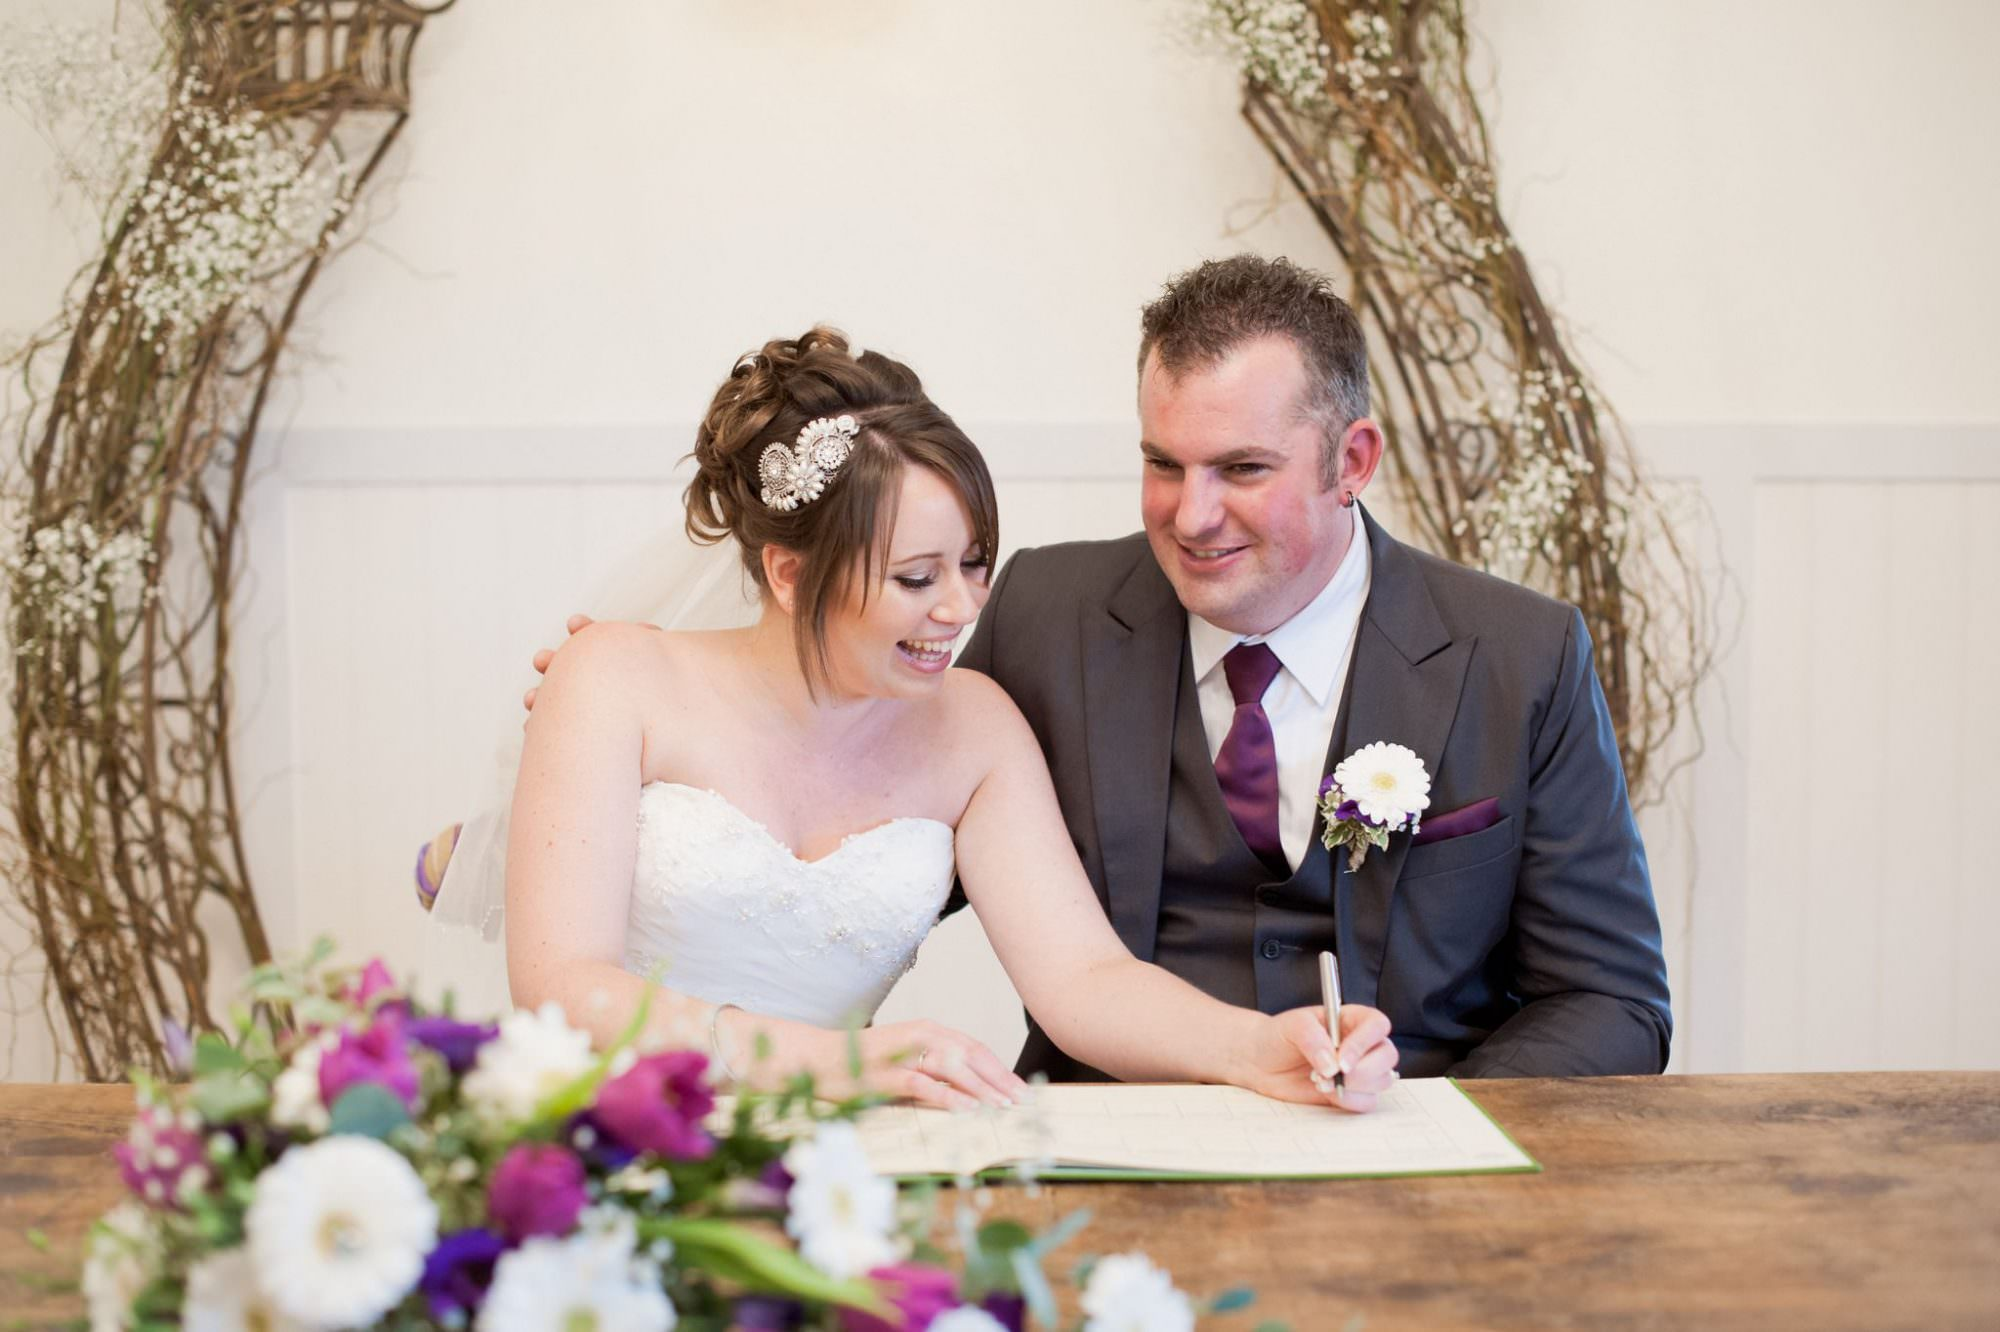 Signing the Register at Kings Arms Hotel Wedding